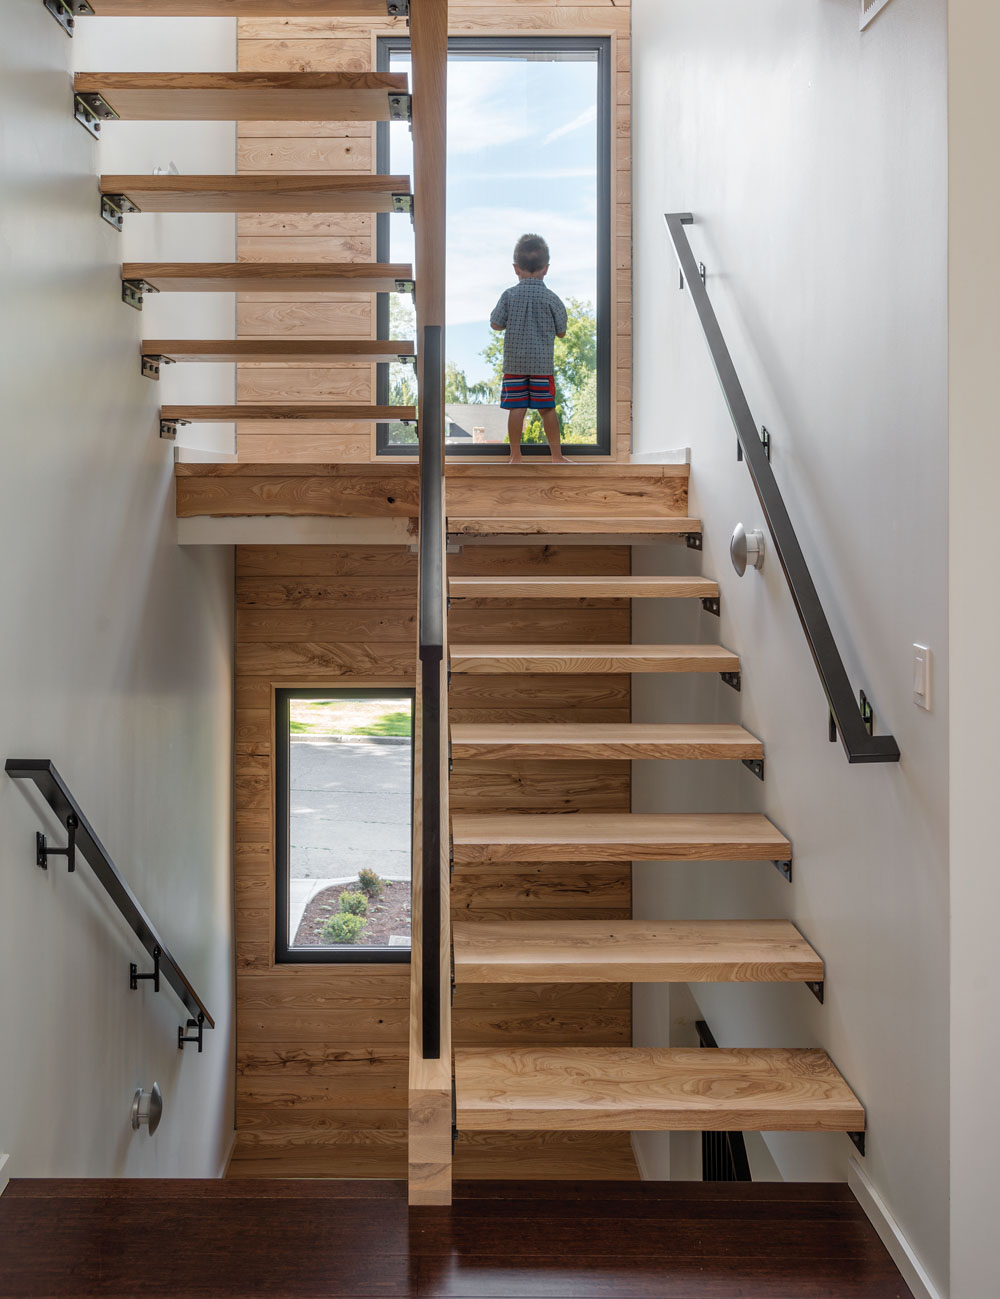 Airy Staircase Design Enhanced by Wood Through Coziness and Warmth